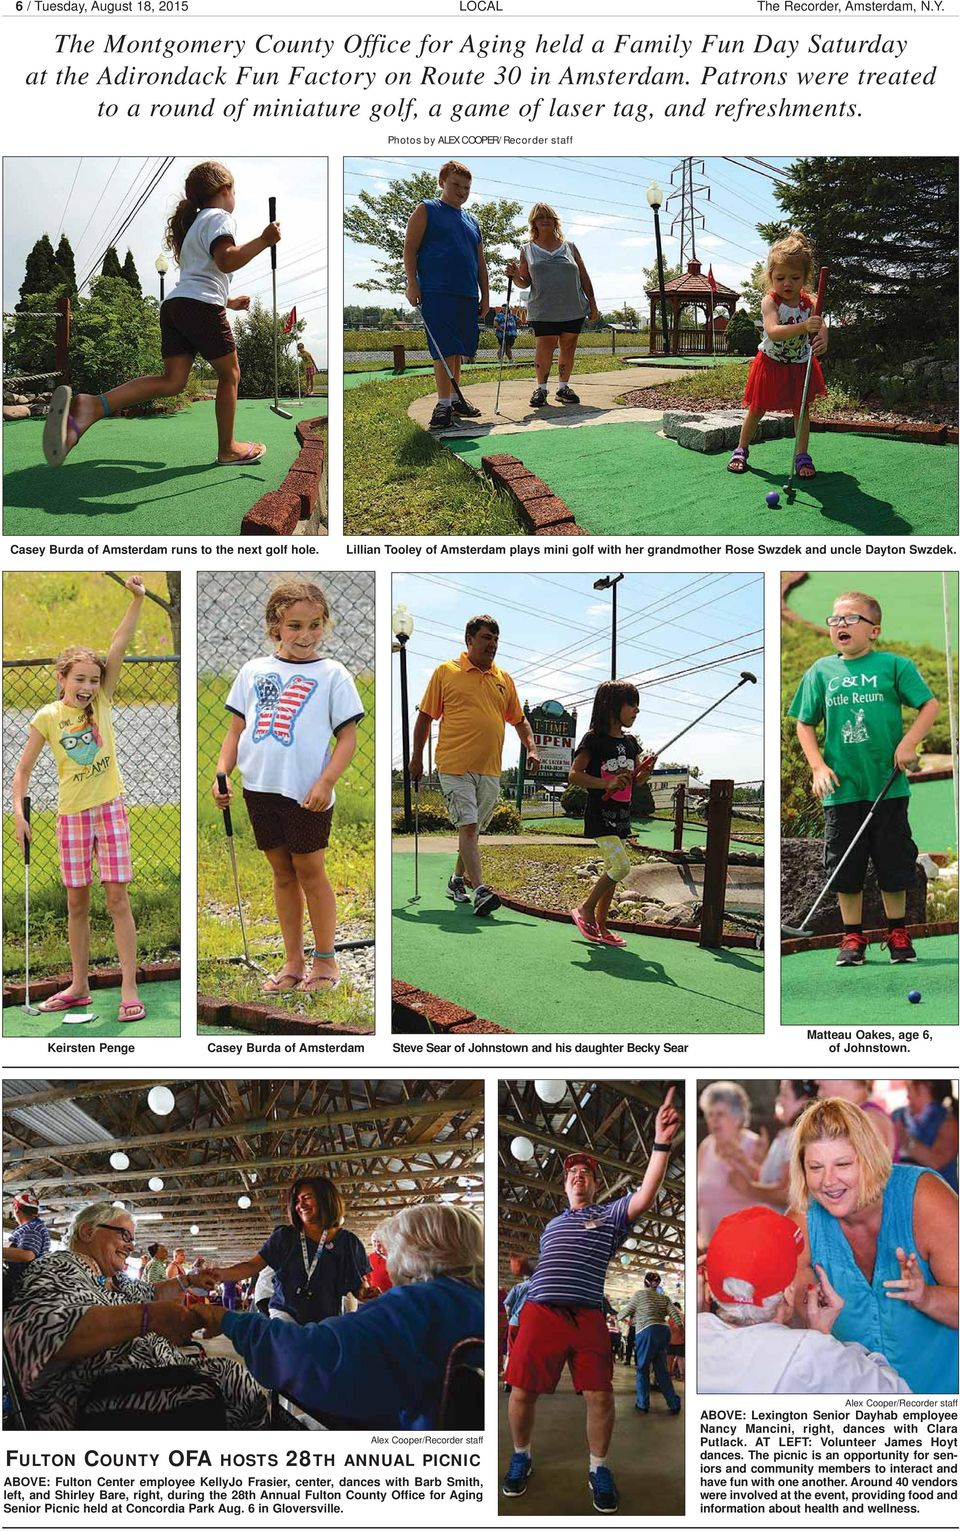 Lillian Tooley of Amsterdam plays mini golf with her grandmother Rose Swzdek and uncle Dayton Swzdek.